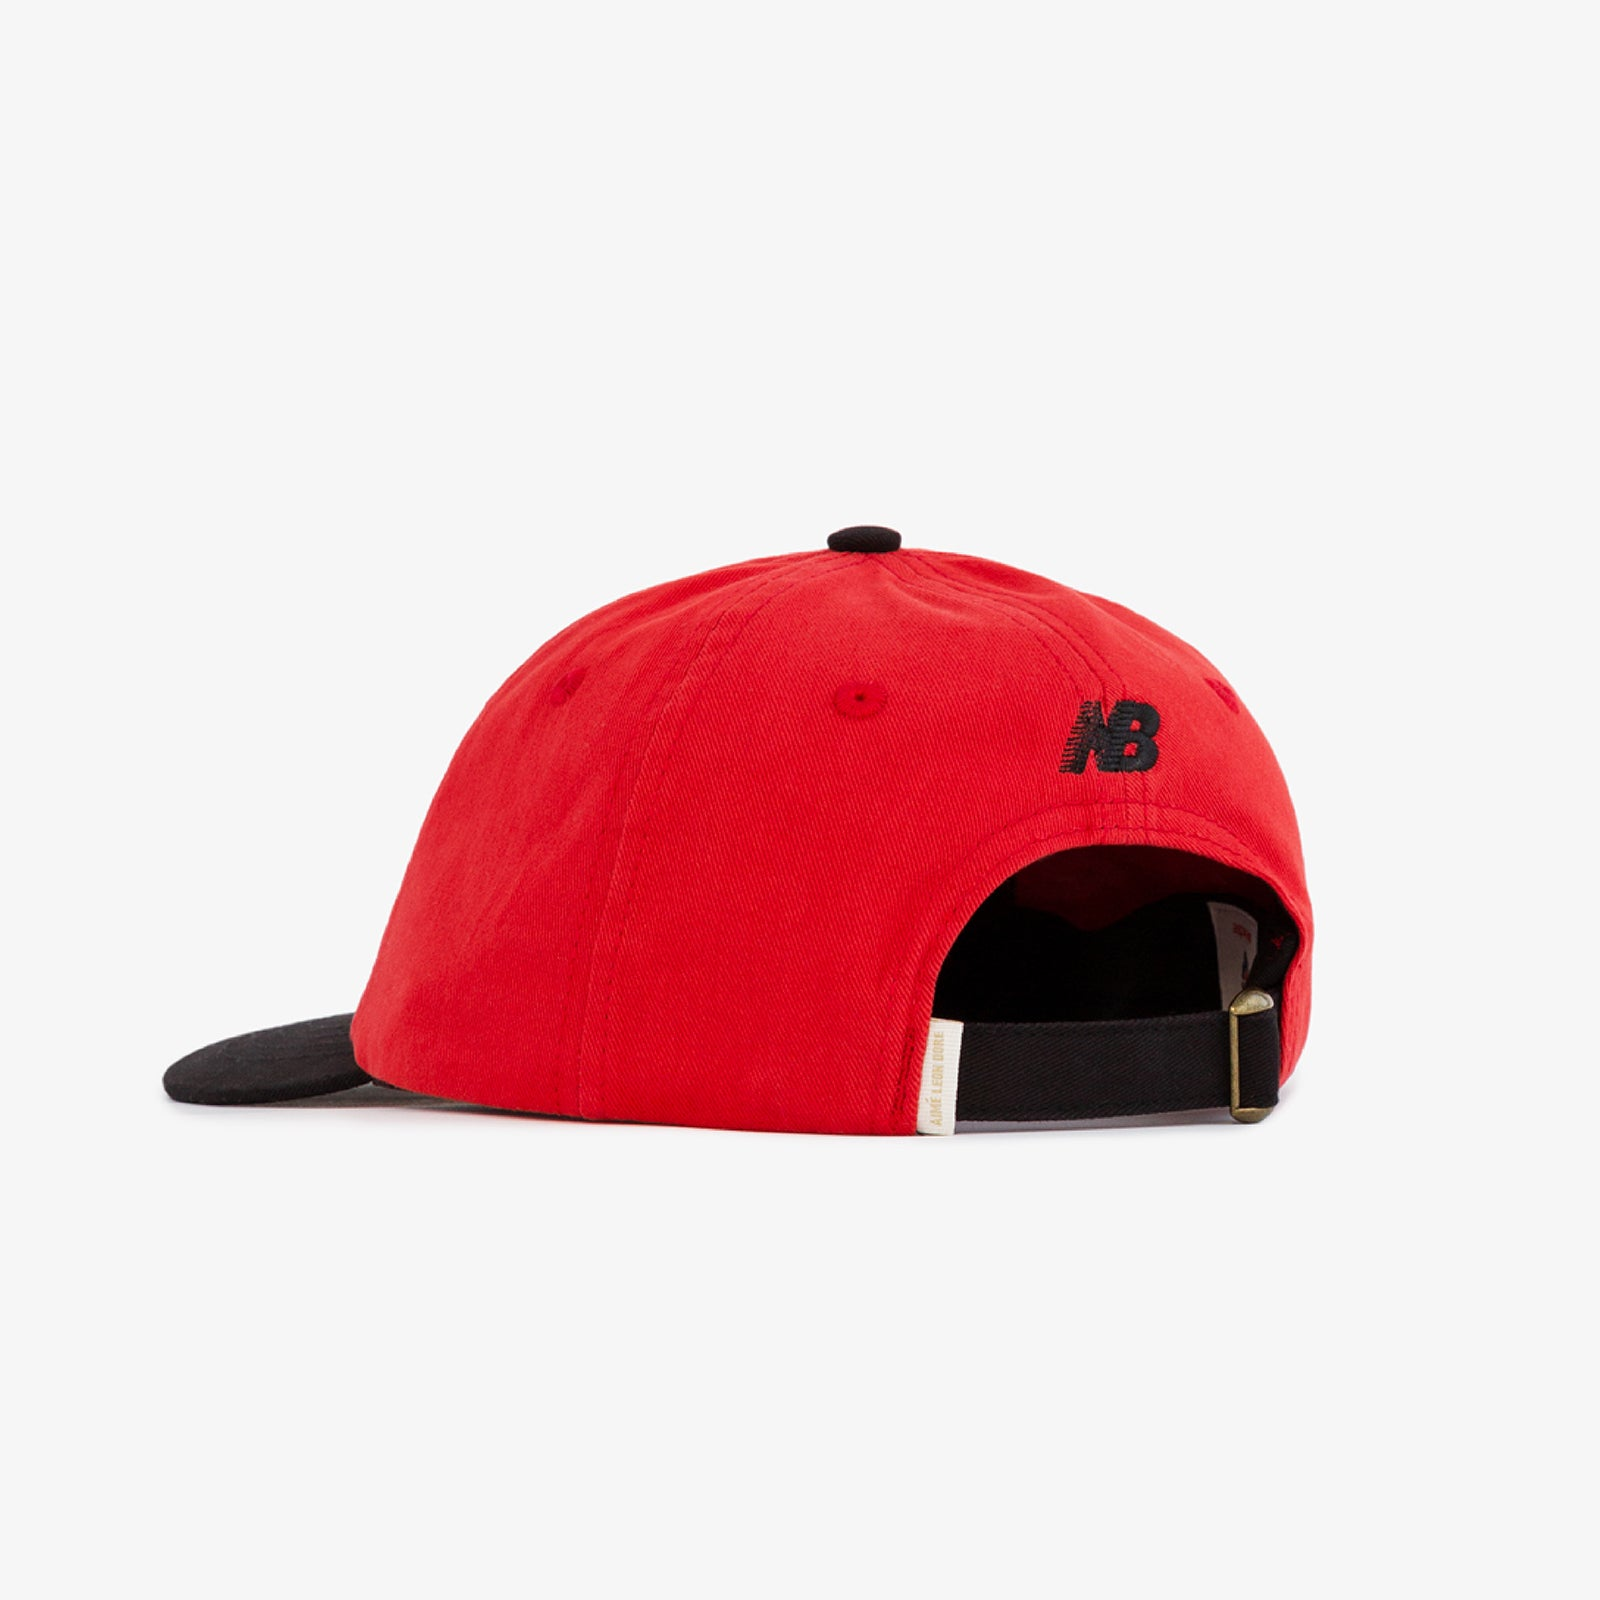 ALD / New Balance Color-blocked Hat